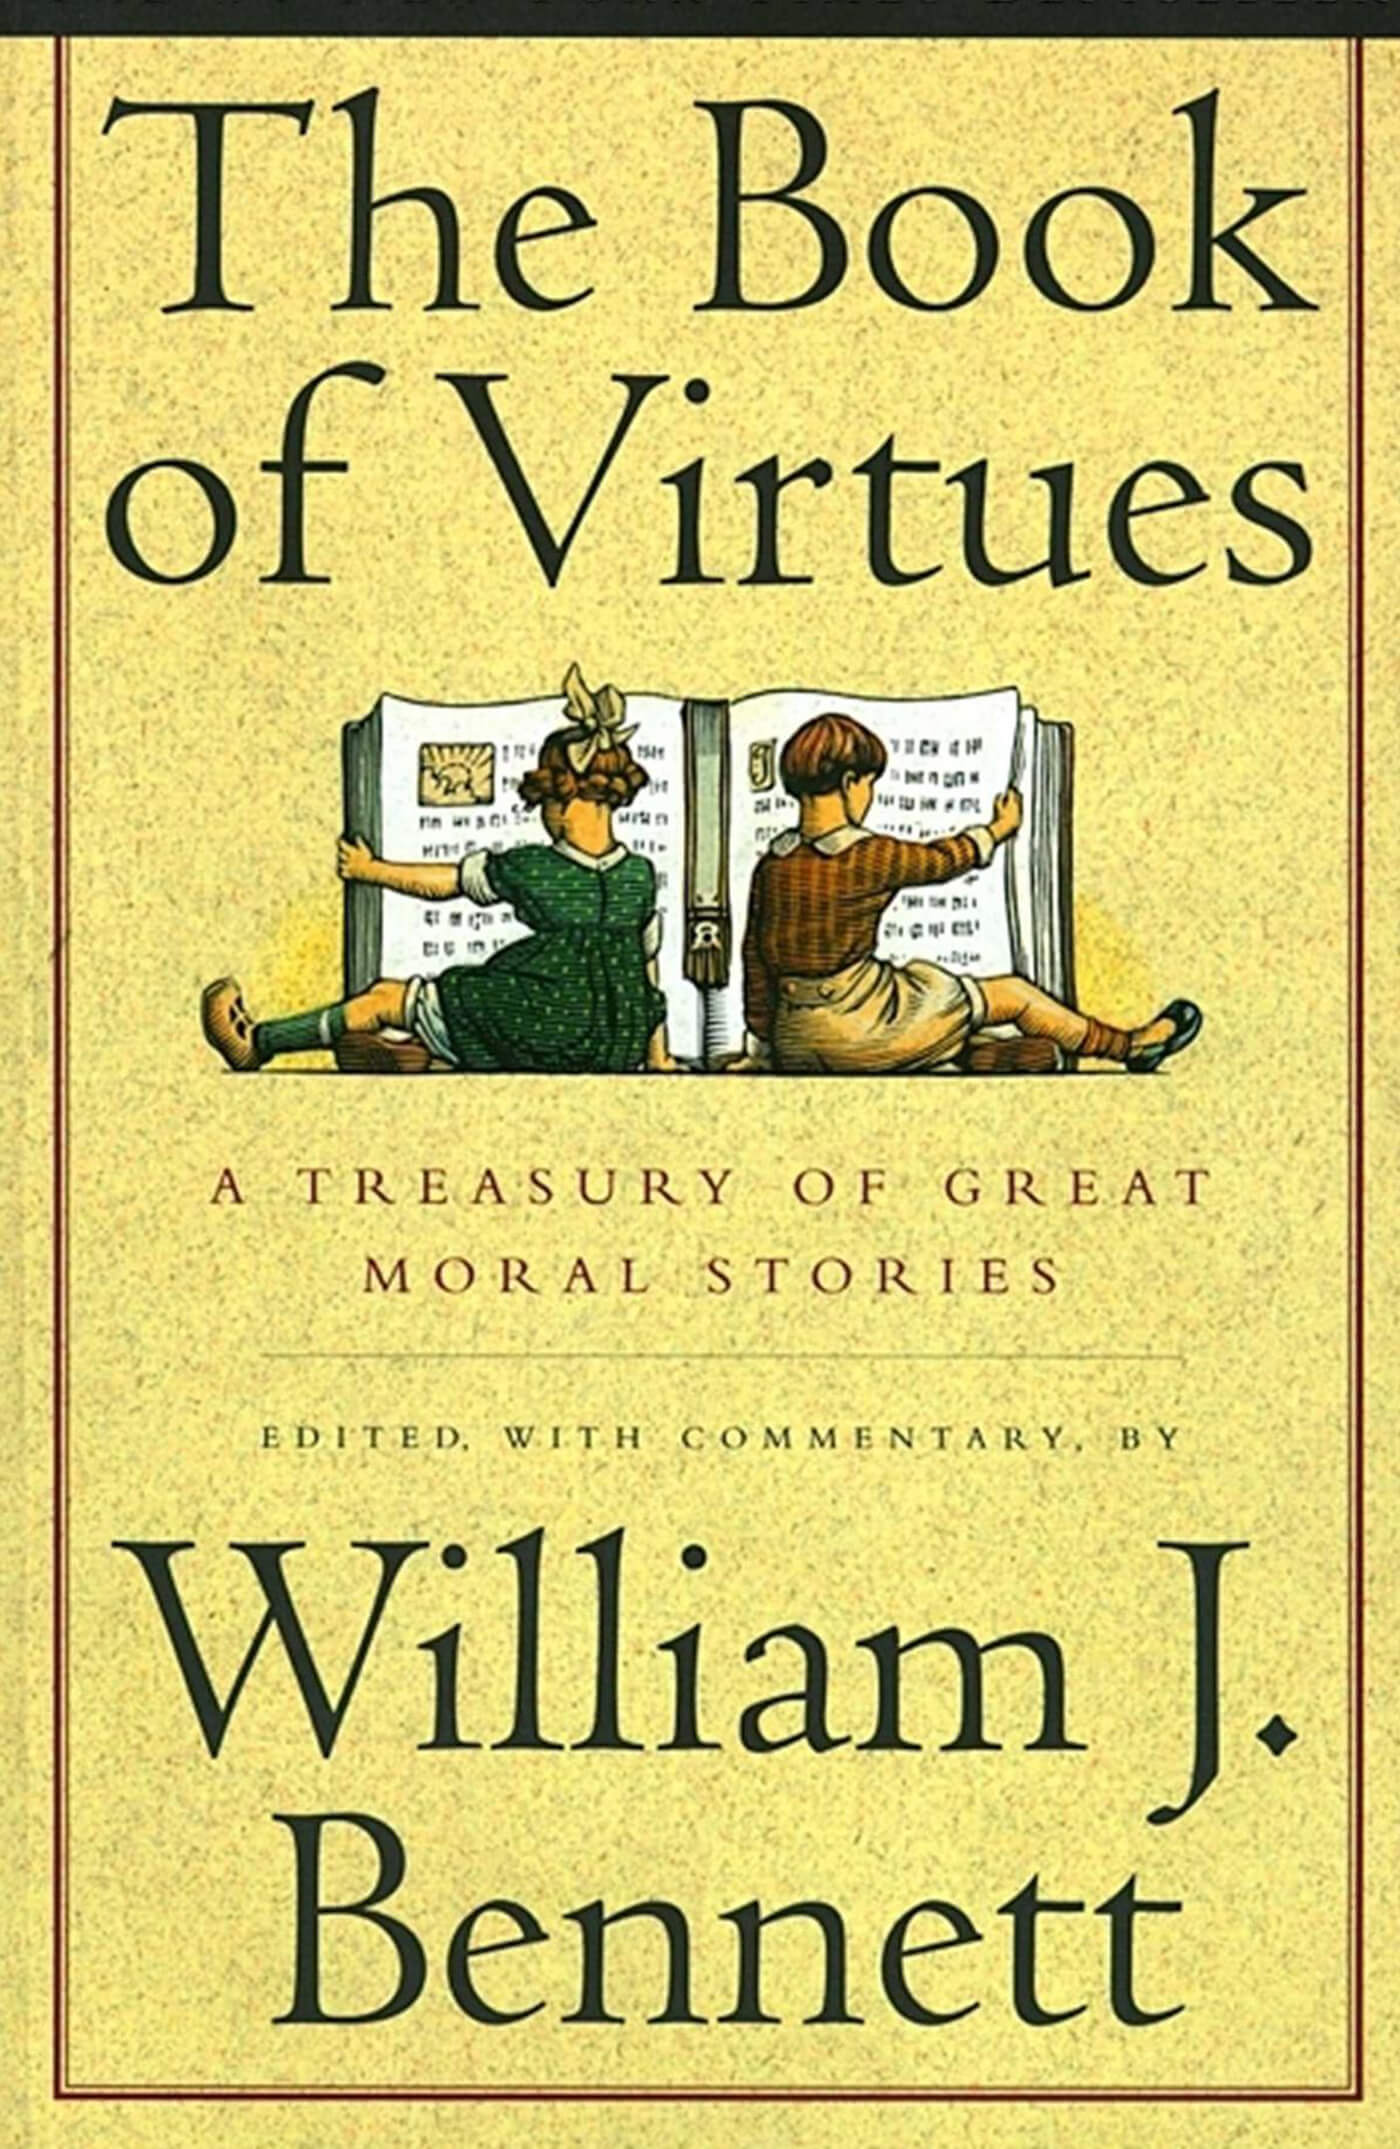 The Book of Virtues: A Treasury of Great Moral Stories Book by William Bennett